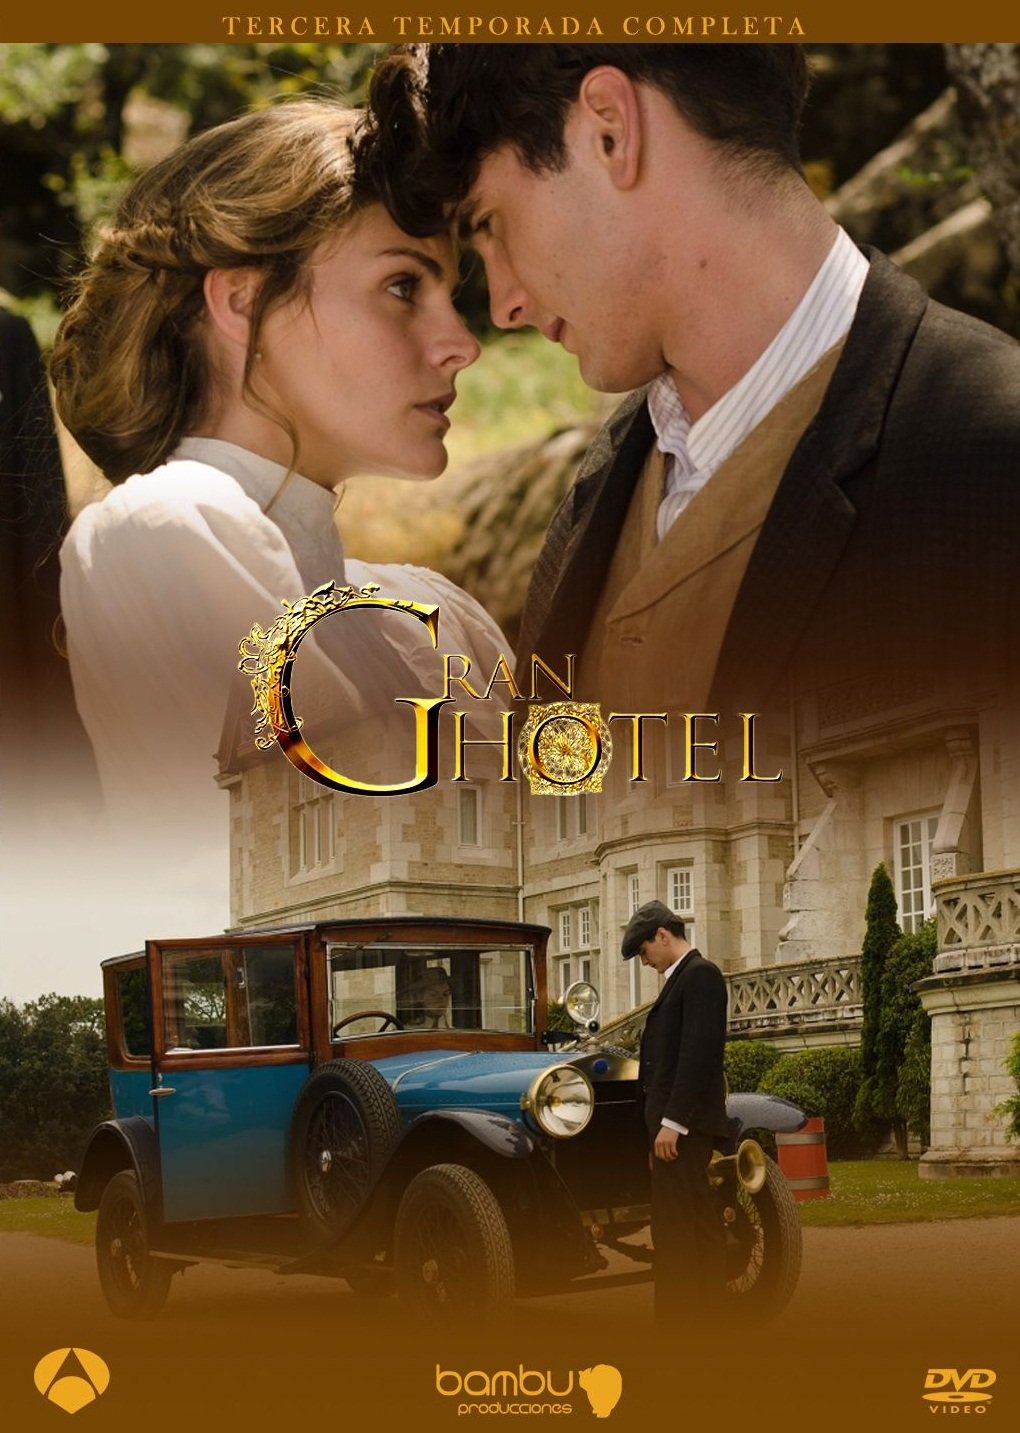 Gran Hotel - Tercera Temporada (2013) Parte 2